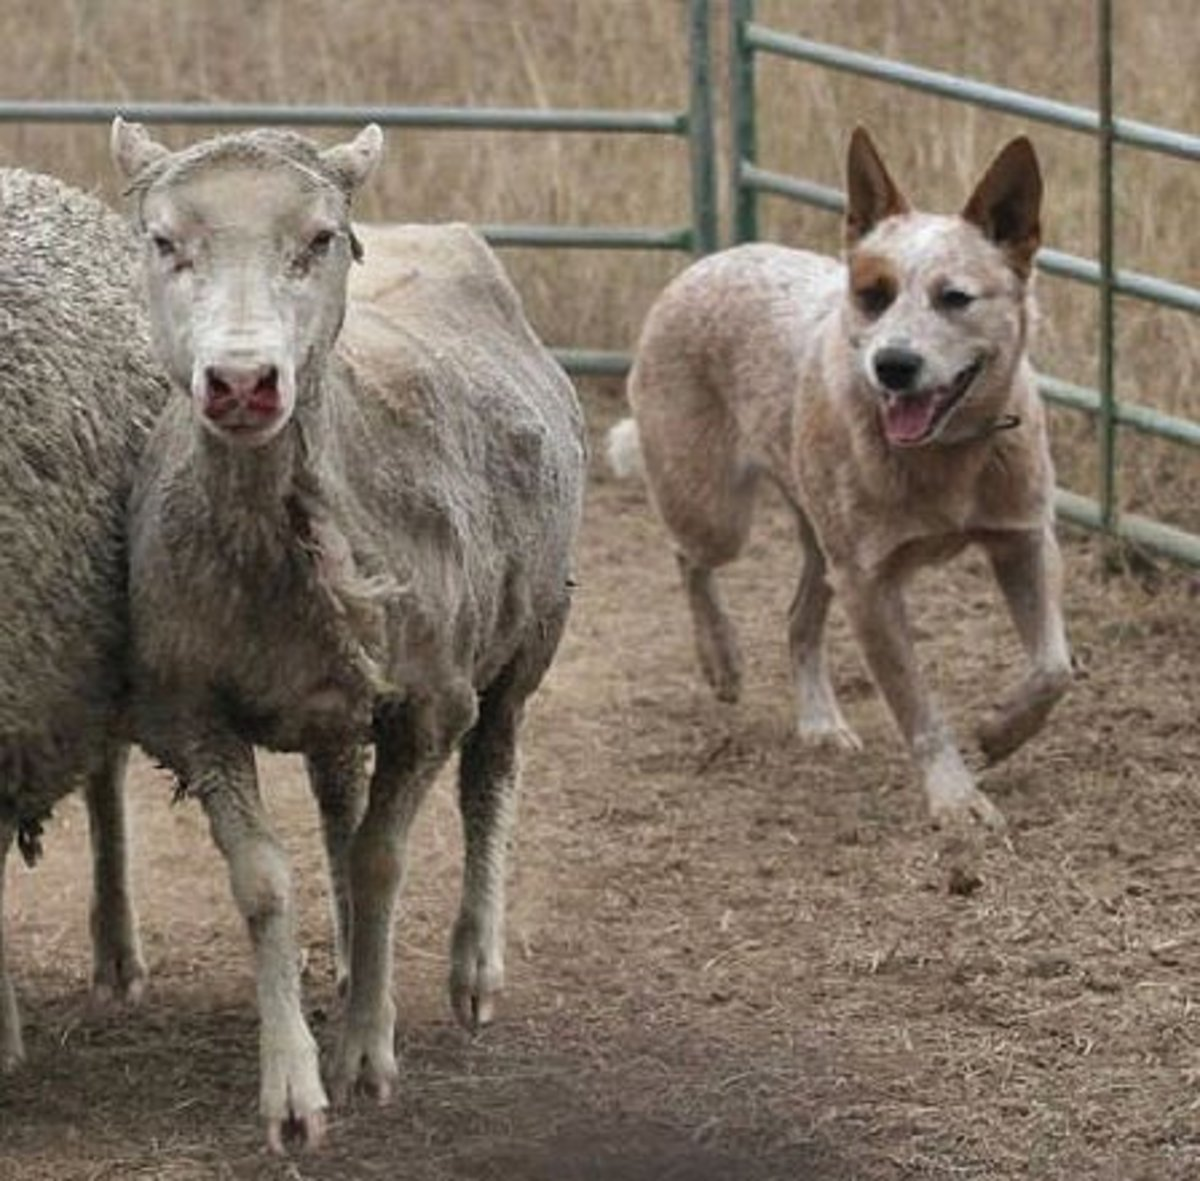 An Australian Cattle Dog herding sheep.